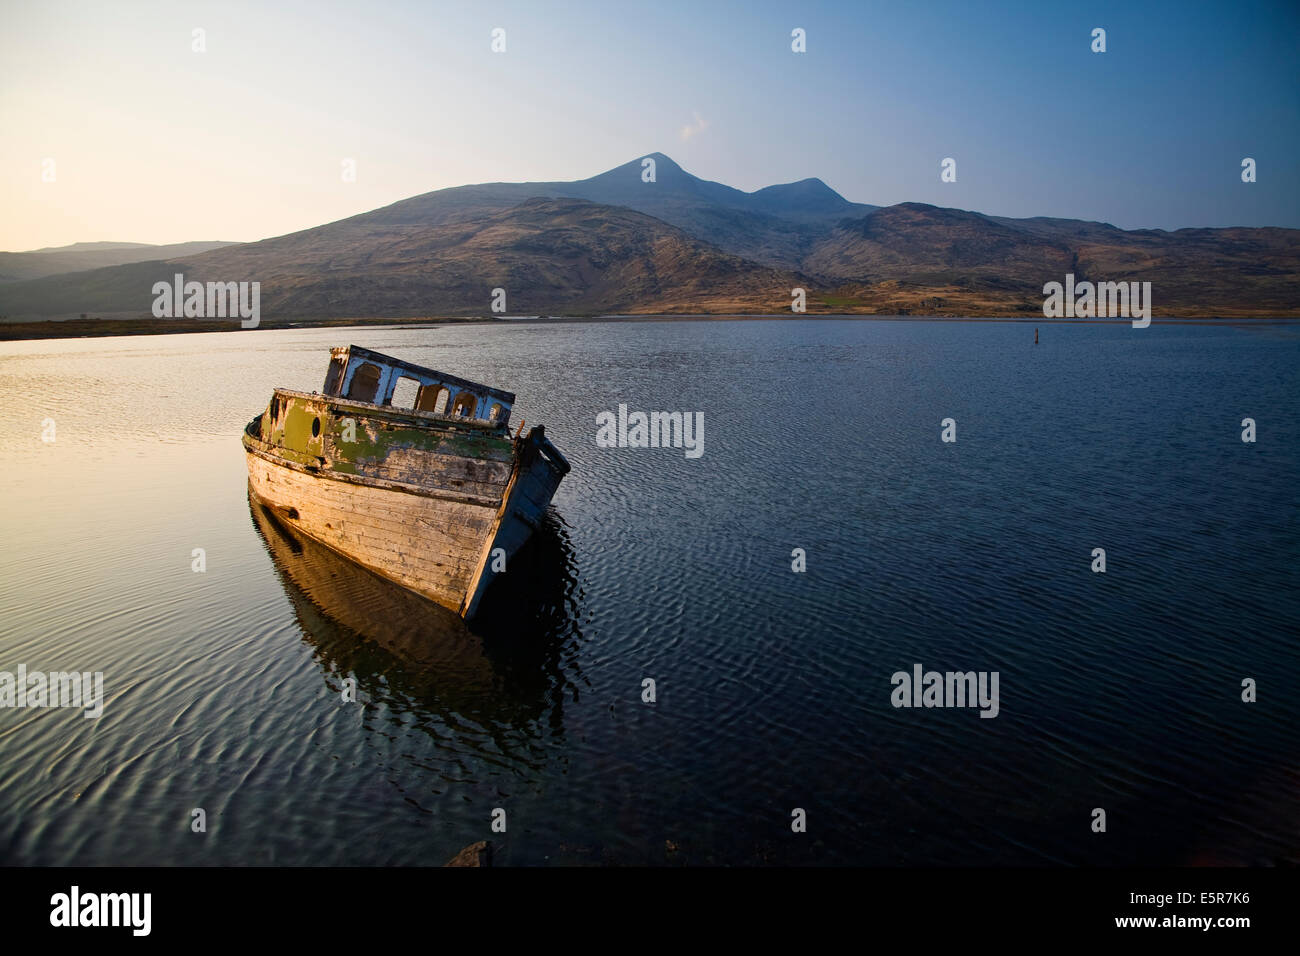 Wreck of old wooden boat in evening light in Loch Scridain, Isle of Mull with Ben More in the background - Stock Image